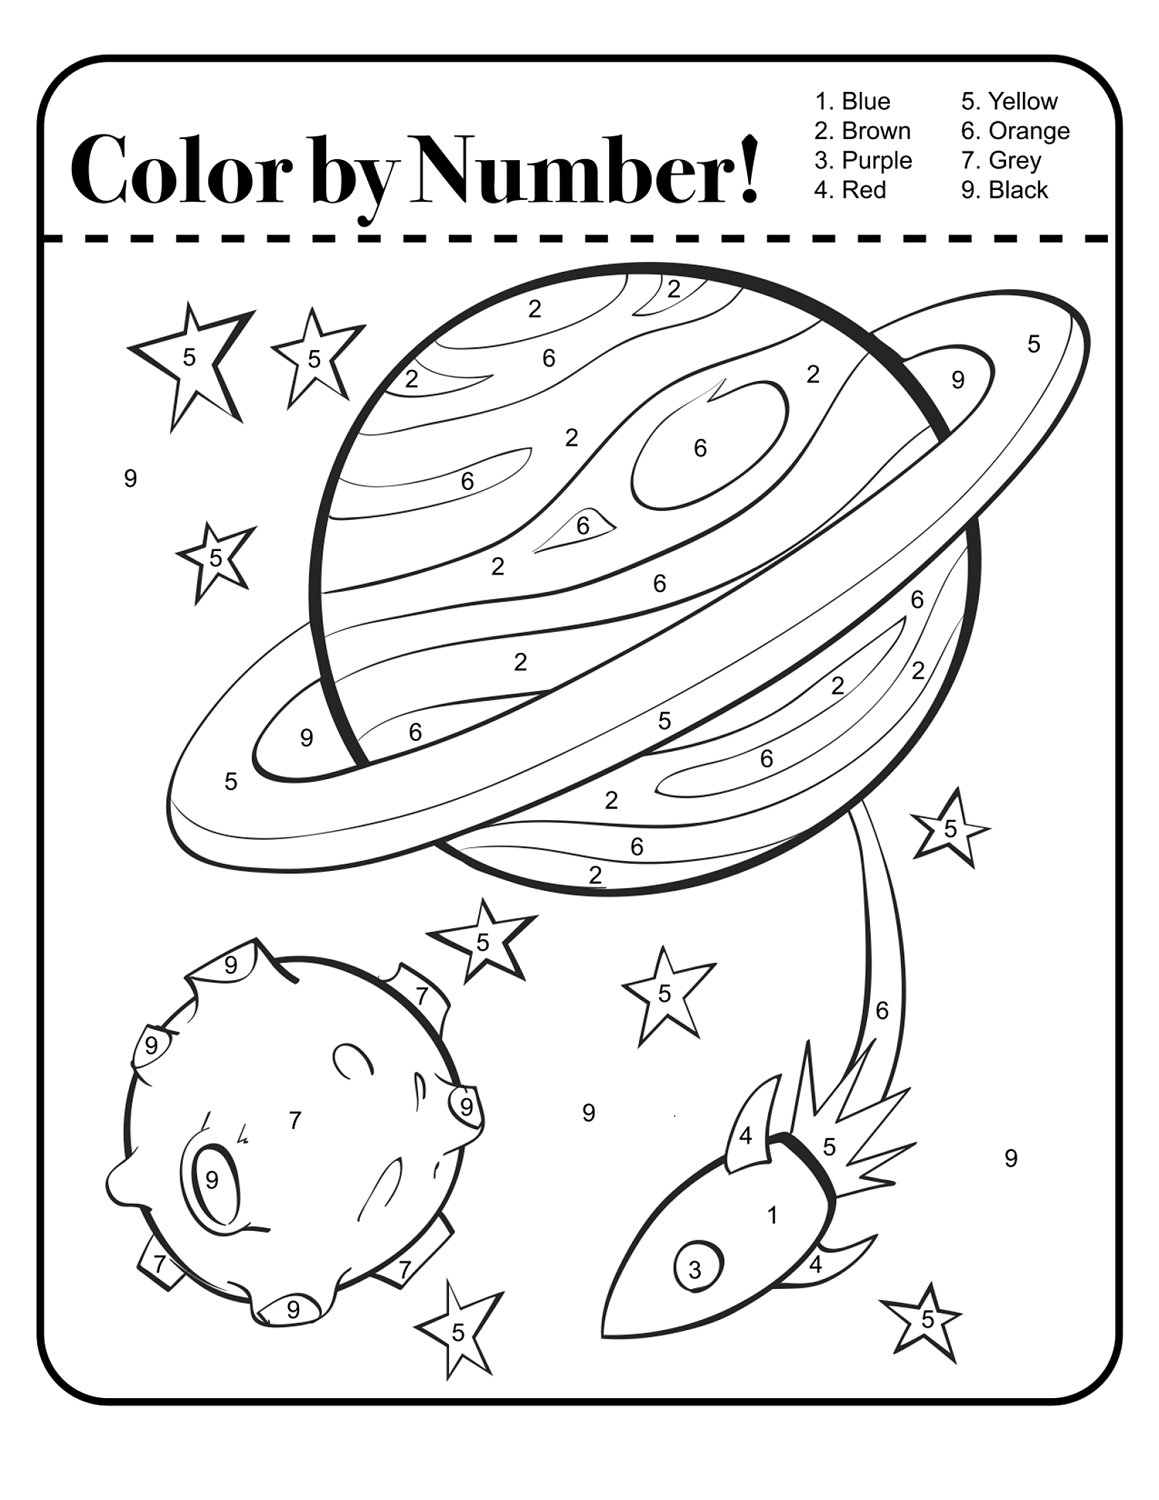 space coloring pages free printable space coloring pages best coloring pages for kids space printable coloring free pages